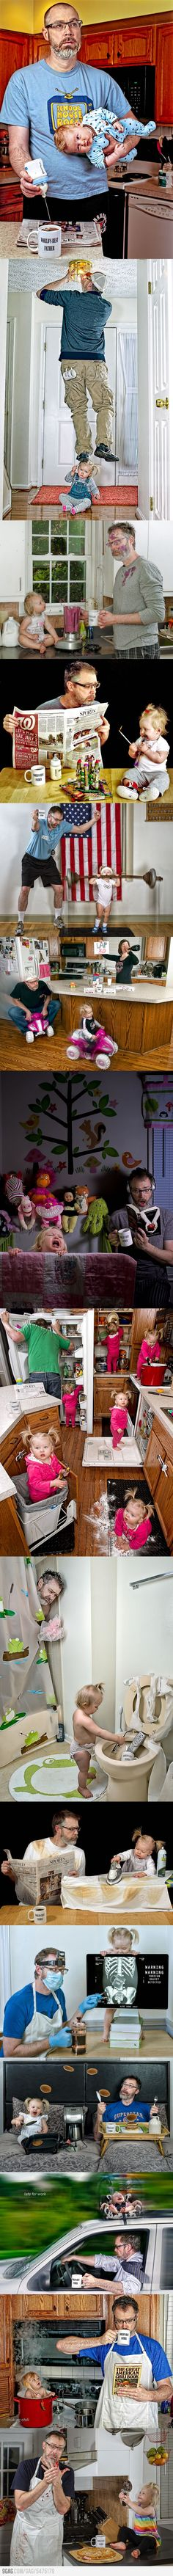 World's Best Father-These photos are hilarious and great future dad album idea.... @Rebecca Endress